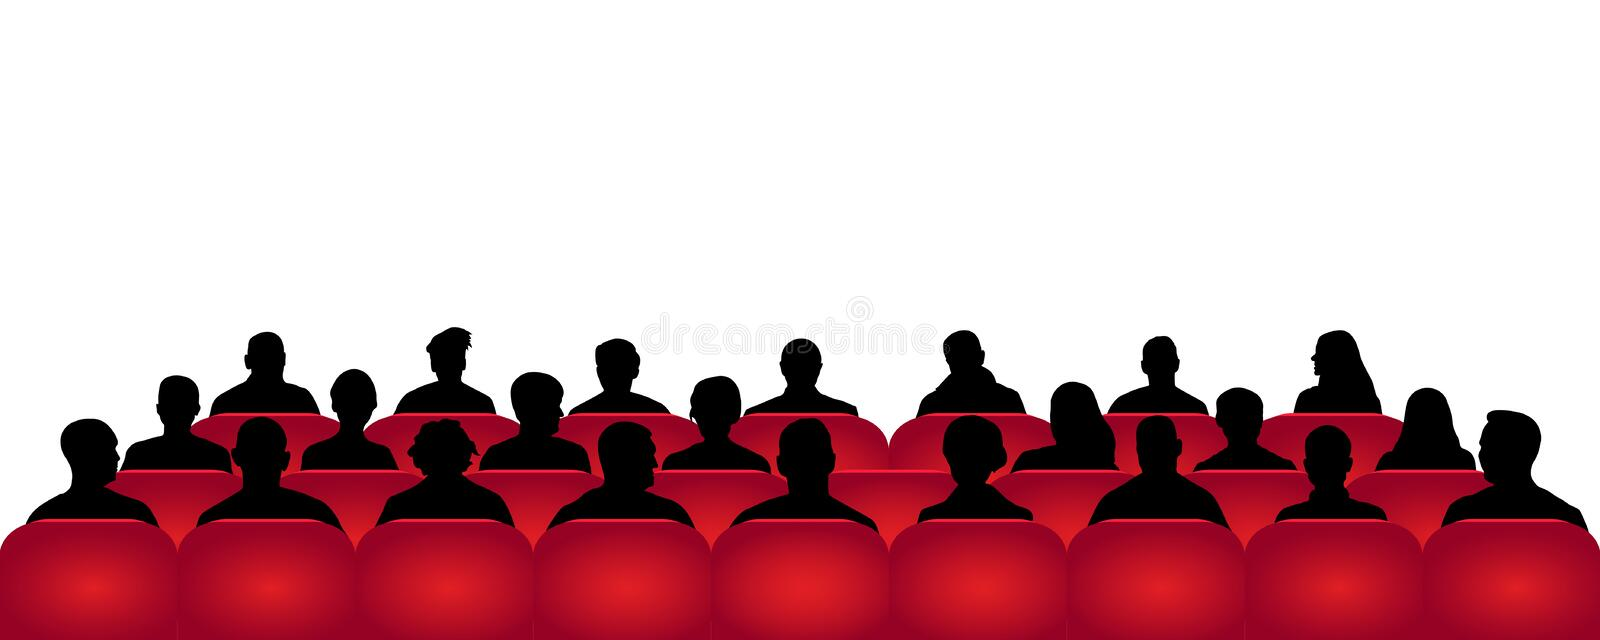 Audience Silhouette Theater Stock Illustrations 462 Audience Silhouette Theater Stock Illustrations Vectors Clipart Dreamstime